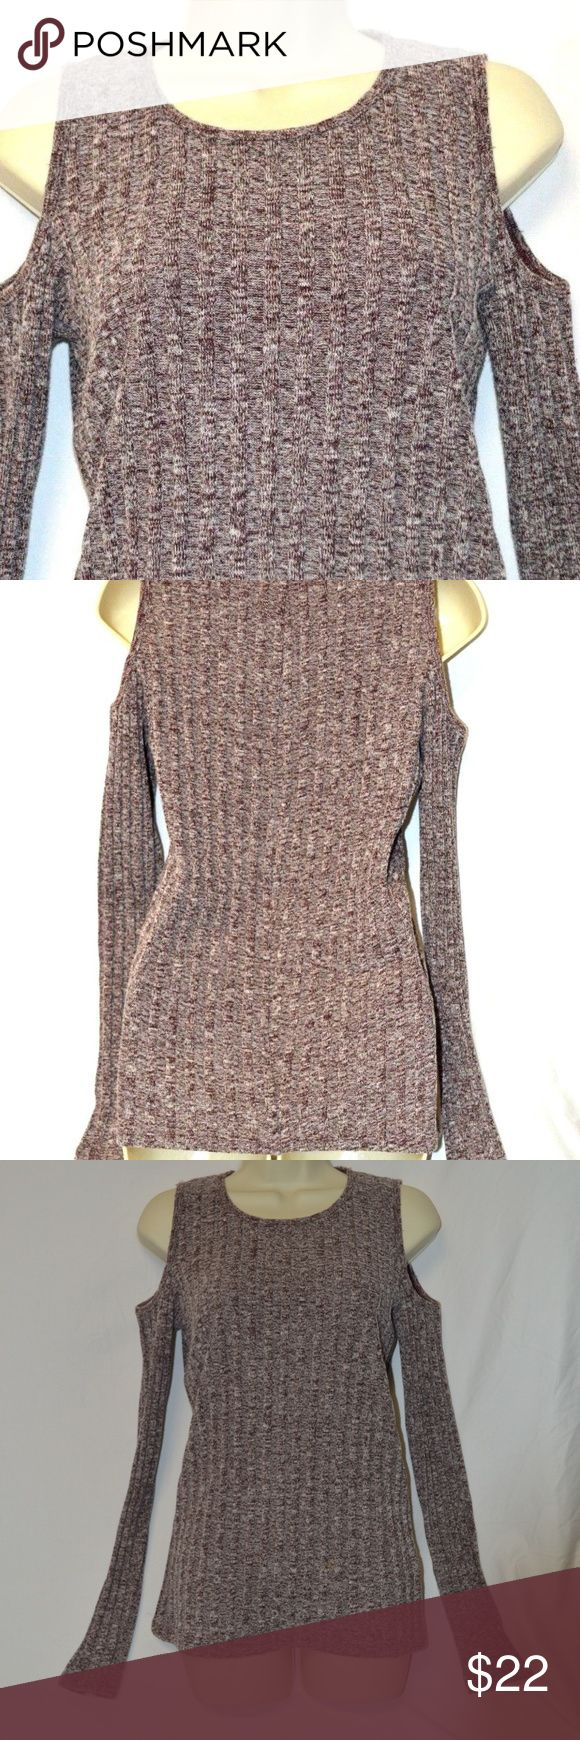 """Hollister California Cold Shoulder Cable Sweater Women's Hollister California Cold Shoulder Cable Knit Sweater  Size: L  Approximate Measurements:  Underarm to Underarm: 21"""" Back of Collar to Hem: 28"""" Hollister Sweaters Crew & Scoop Necks"""